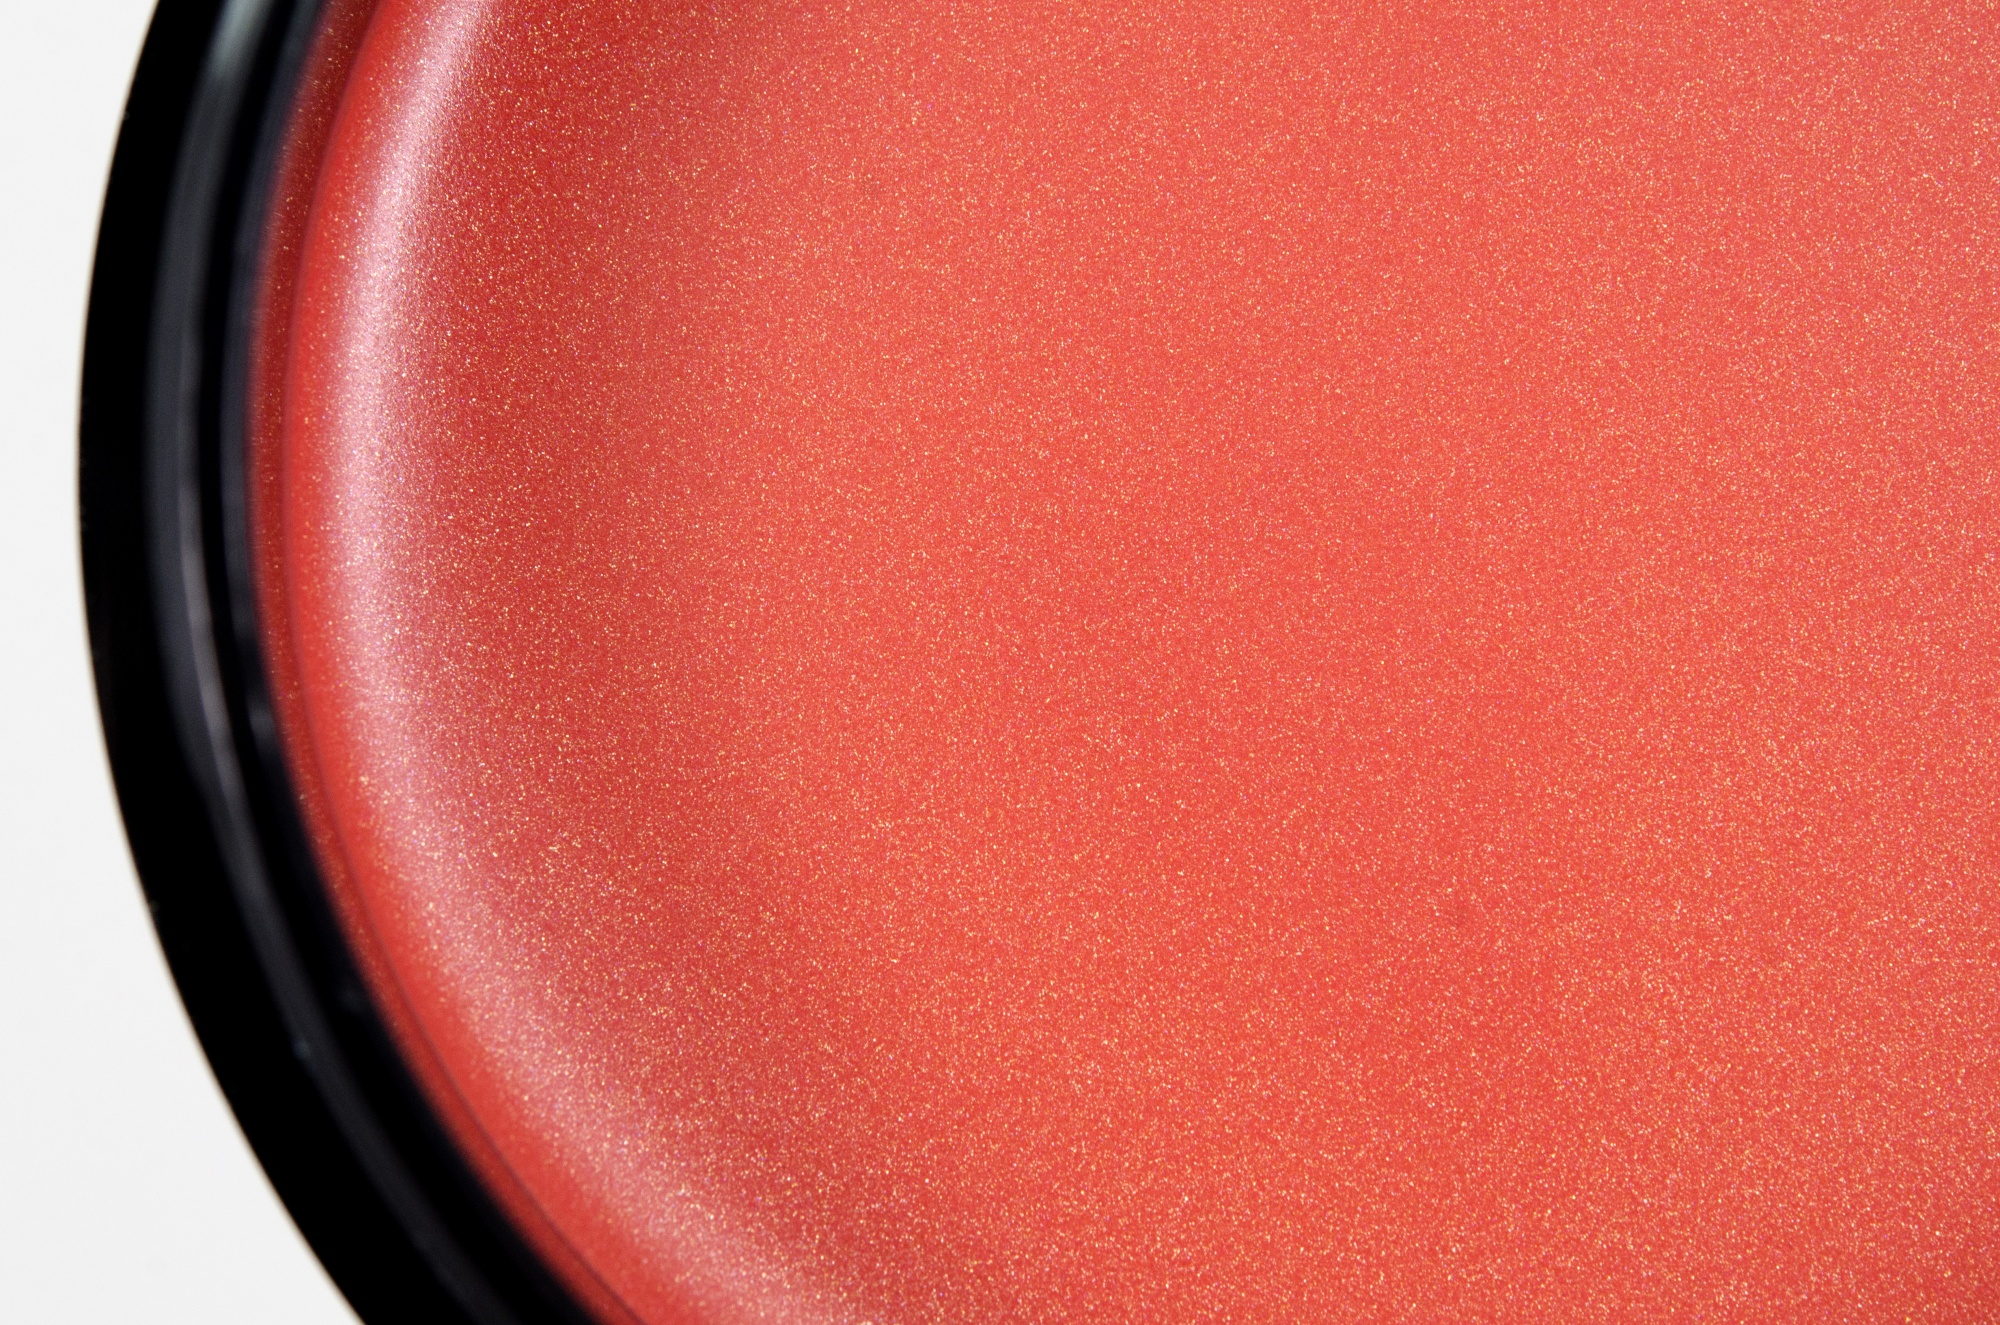 Perfect make-up steps for photo shoots, videos and Zoom calls creme blush